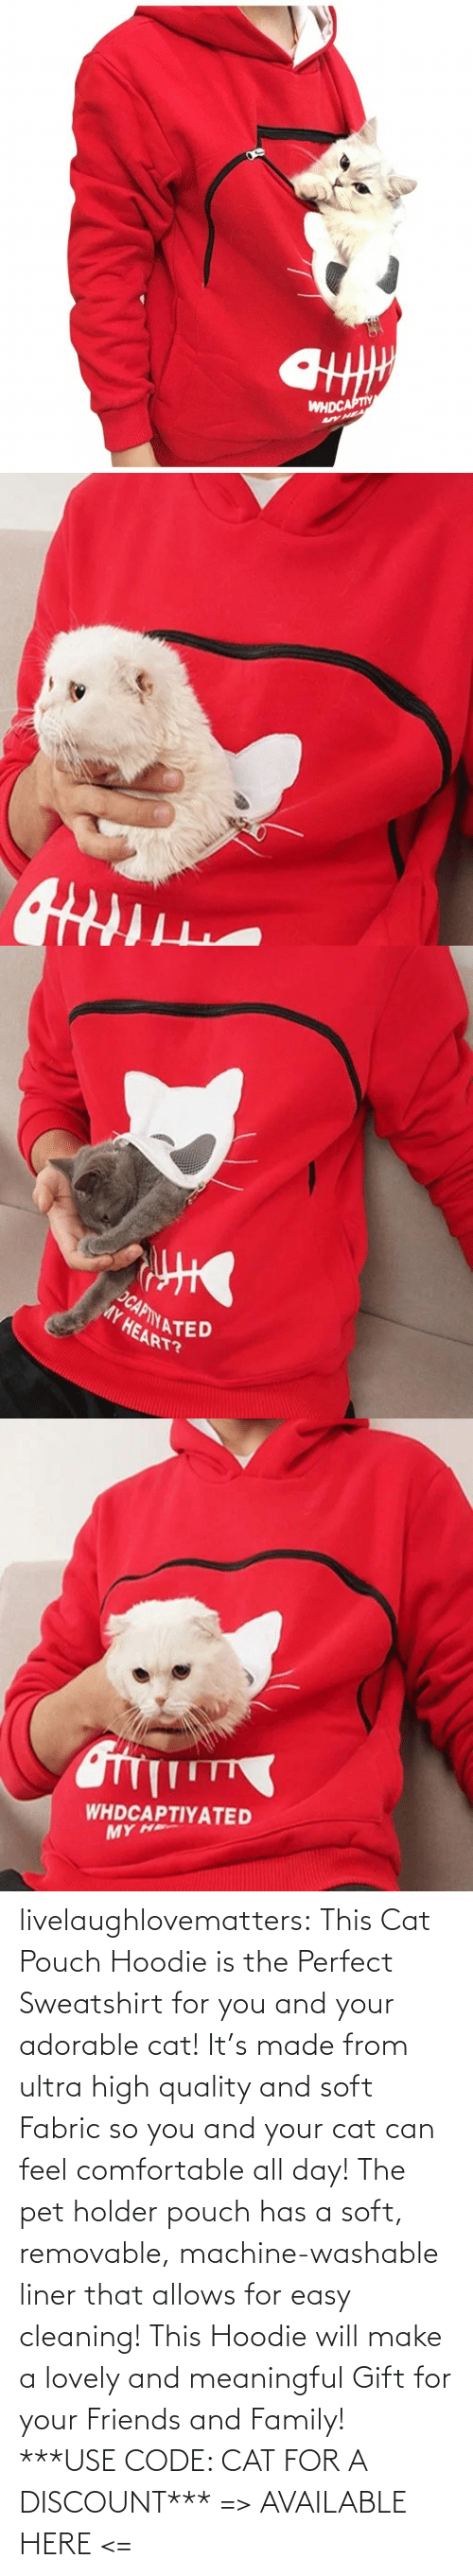 Discount: livelaughlovematters: This Cat Pouch Hoodie is the Perfect Sweatshirt for you and your adorable cat! It's made from ultra high quality and soft Fabric so you and your cat can feel comfortable all day! The pet holder pouch has a soft, removable, machine-washable liner that allows for easy cleaning! This Hoodie will make a lovely and meaningful Gift for your Friends and Family!  ***USE CODE: CAT FOR A DISCOUNT*** => AVAILABLE HERE <=